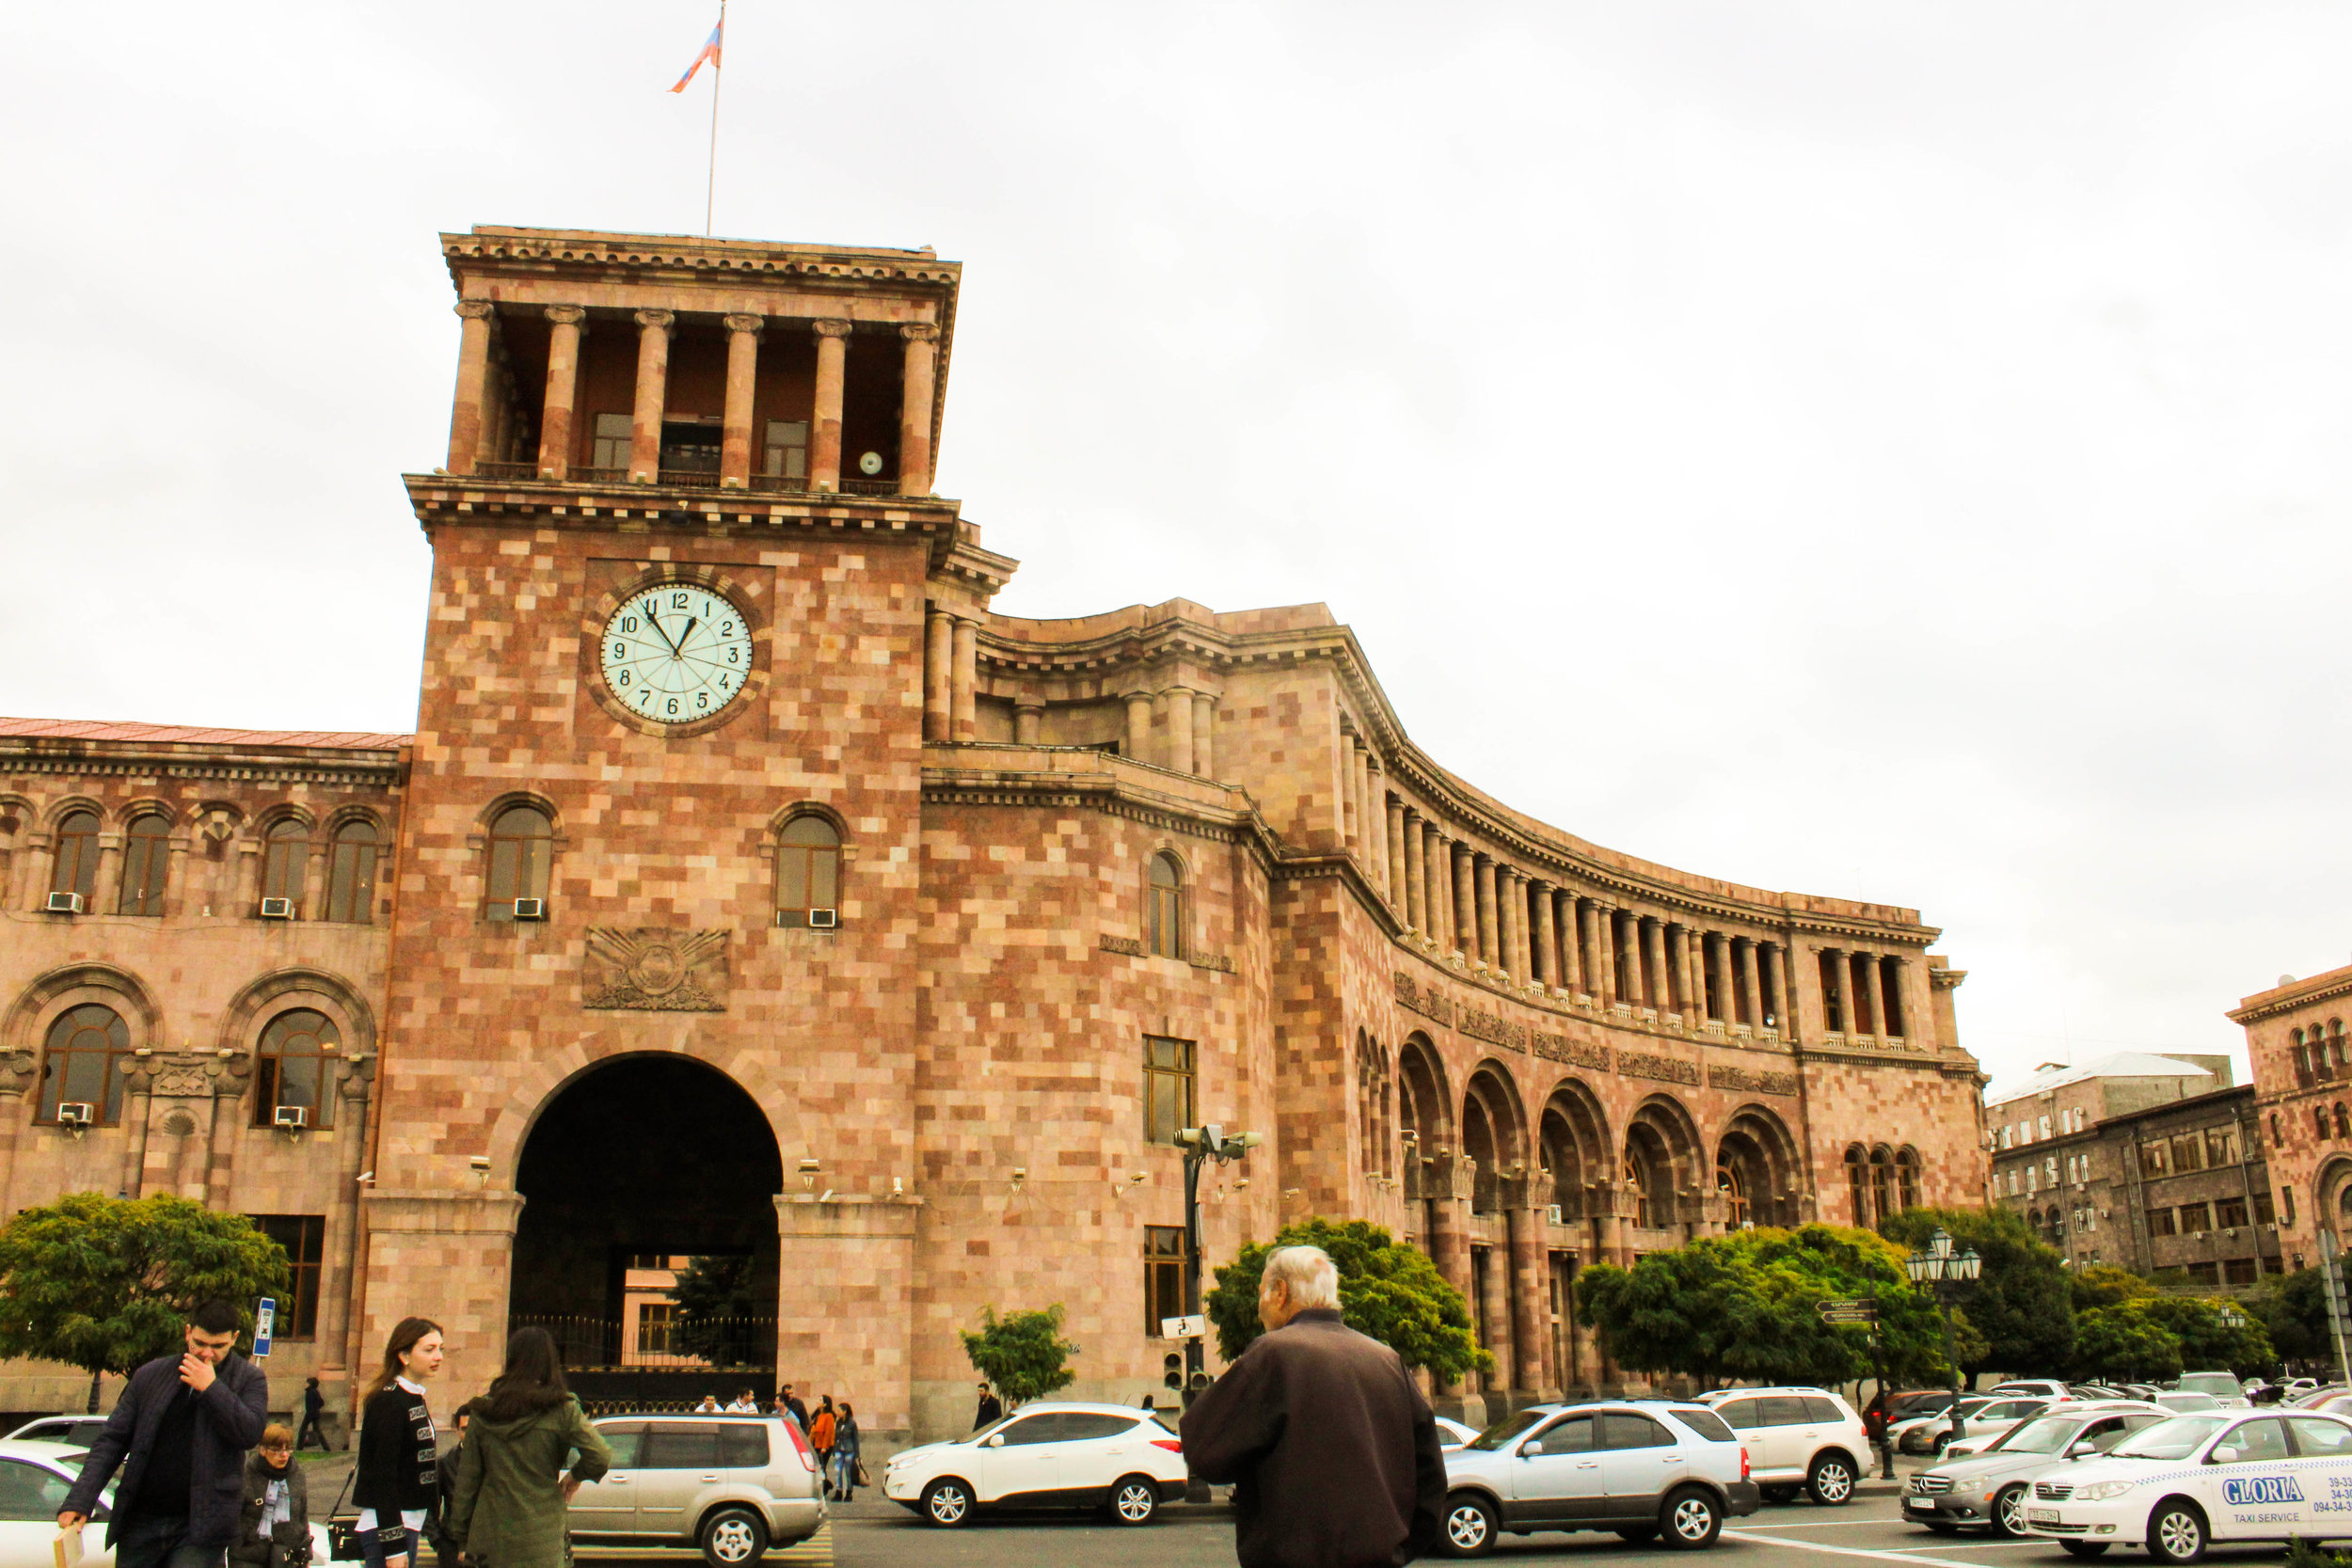 Travel blog guide to Armenia, Yerevan